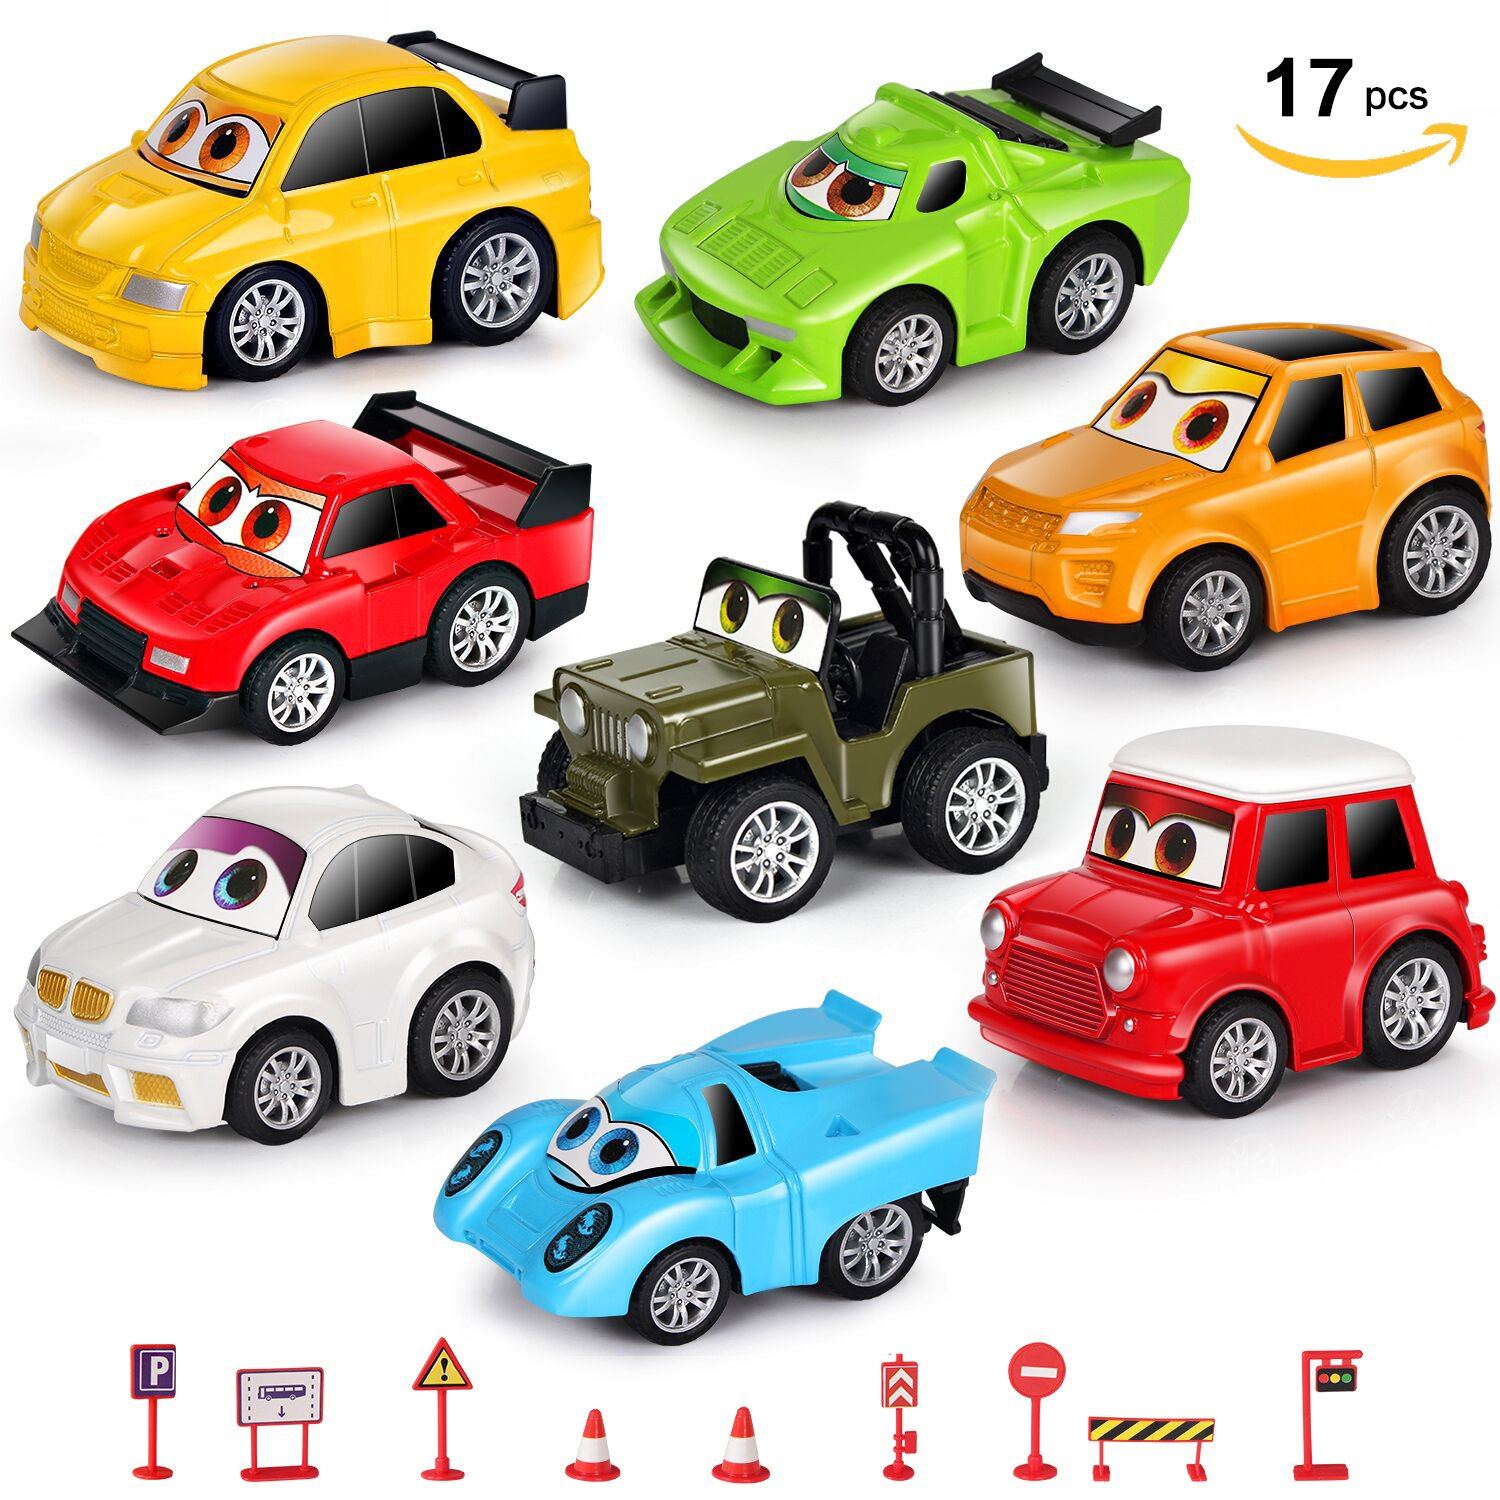 Amazoncom Vohuko Diecast Pull Back Toy Cars,17Pcs Set Of 8